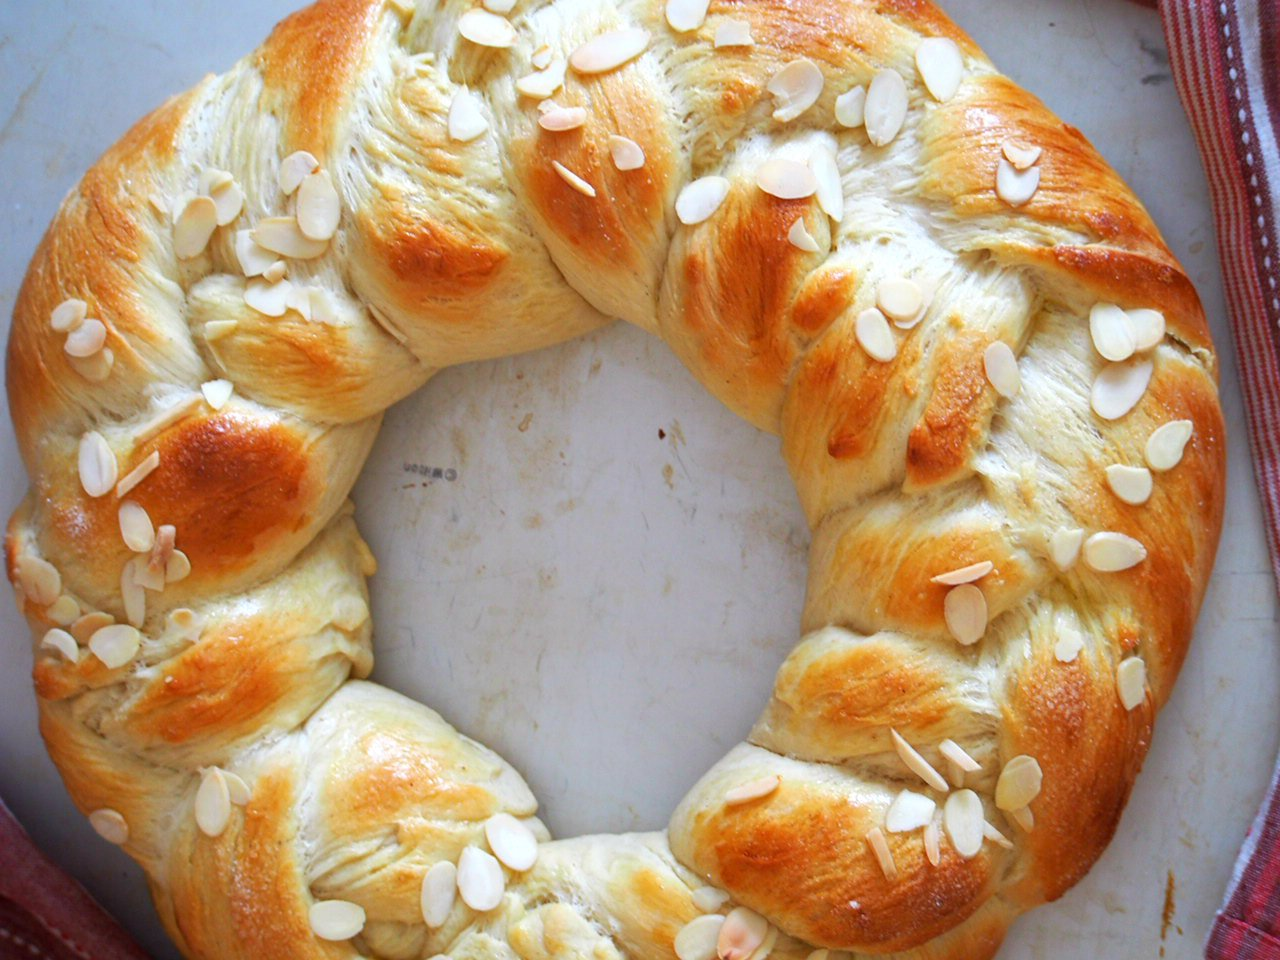 Another shot of the Finnish Pulla Bread, top angle.